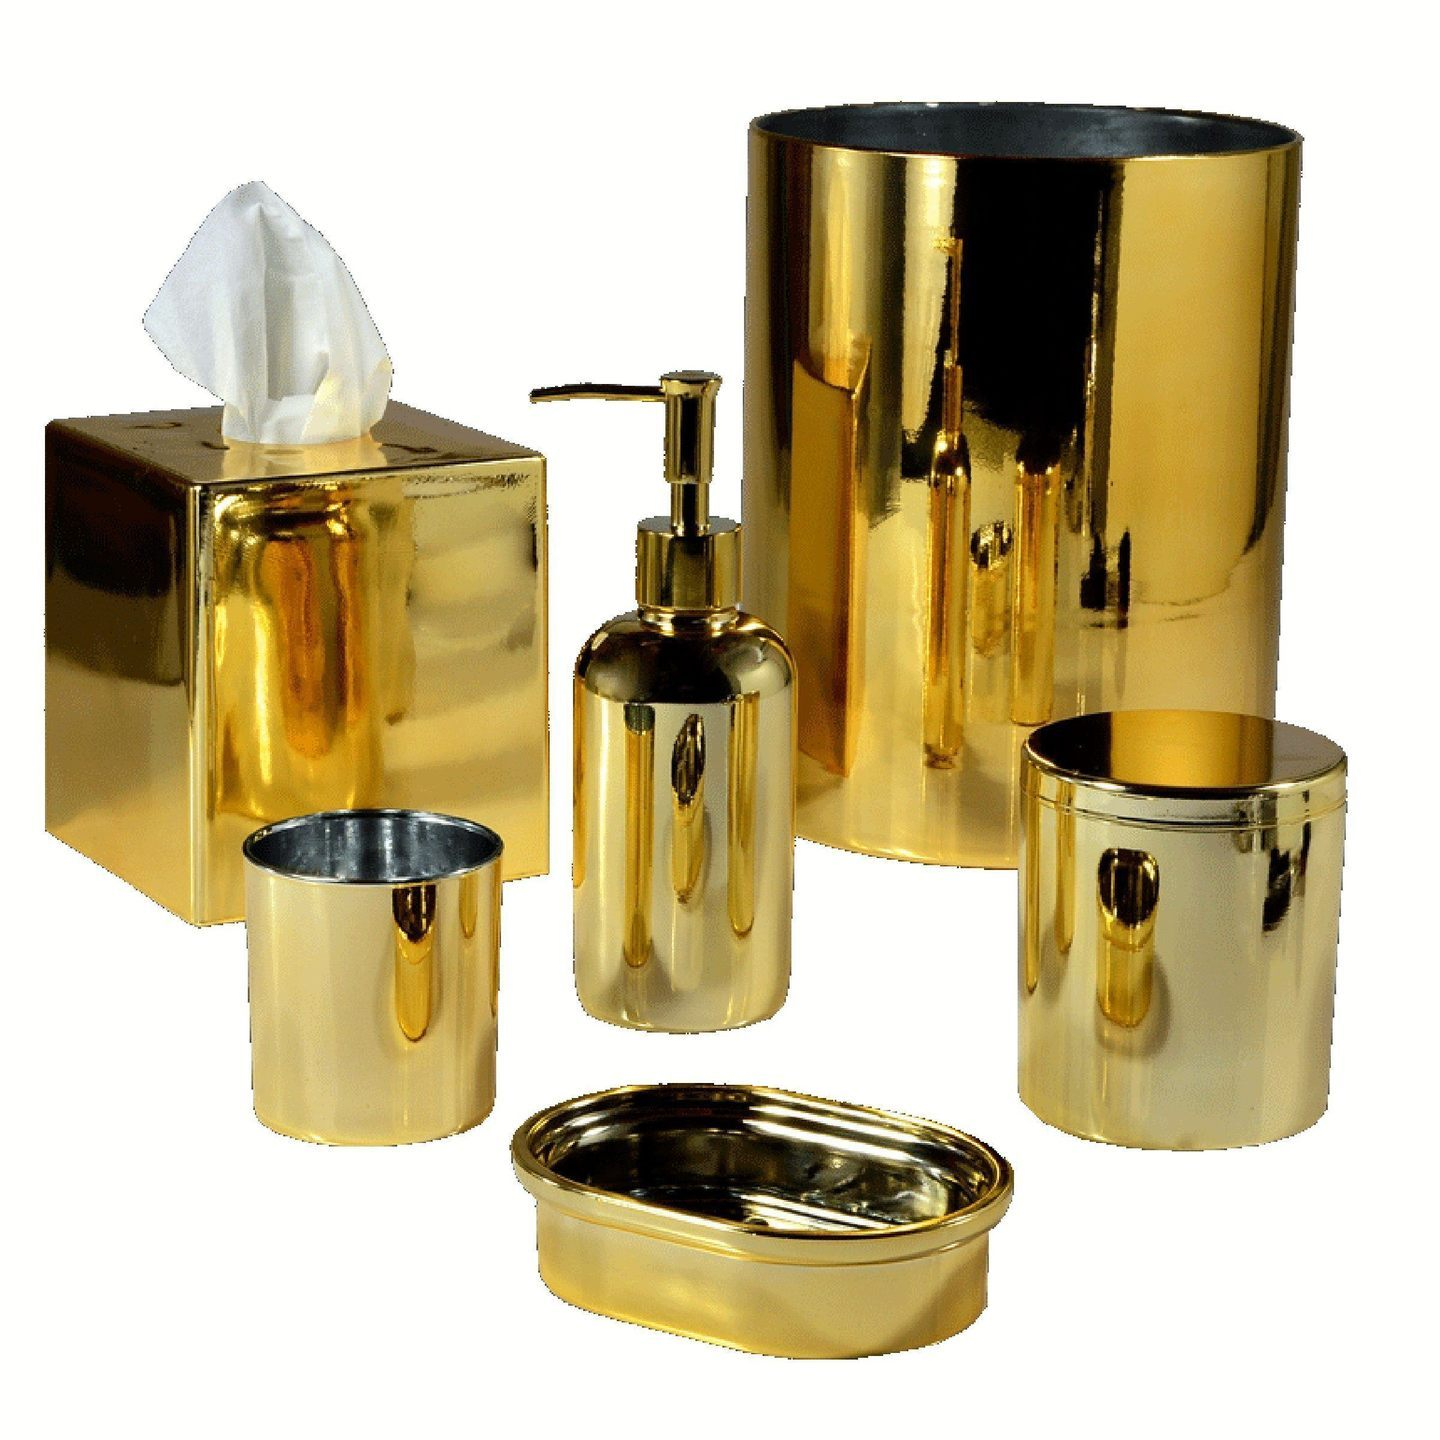 Nova Gold Bath Accessories by Mike + Ally